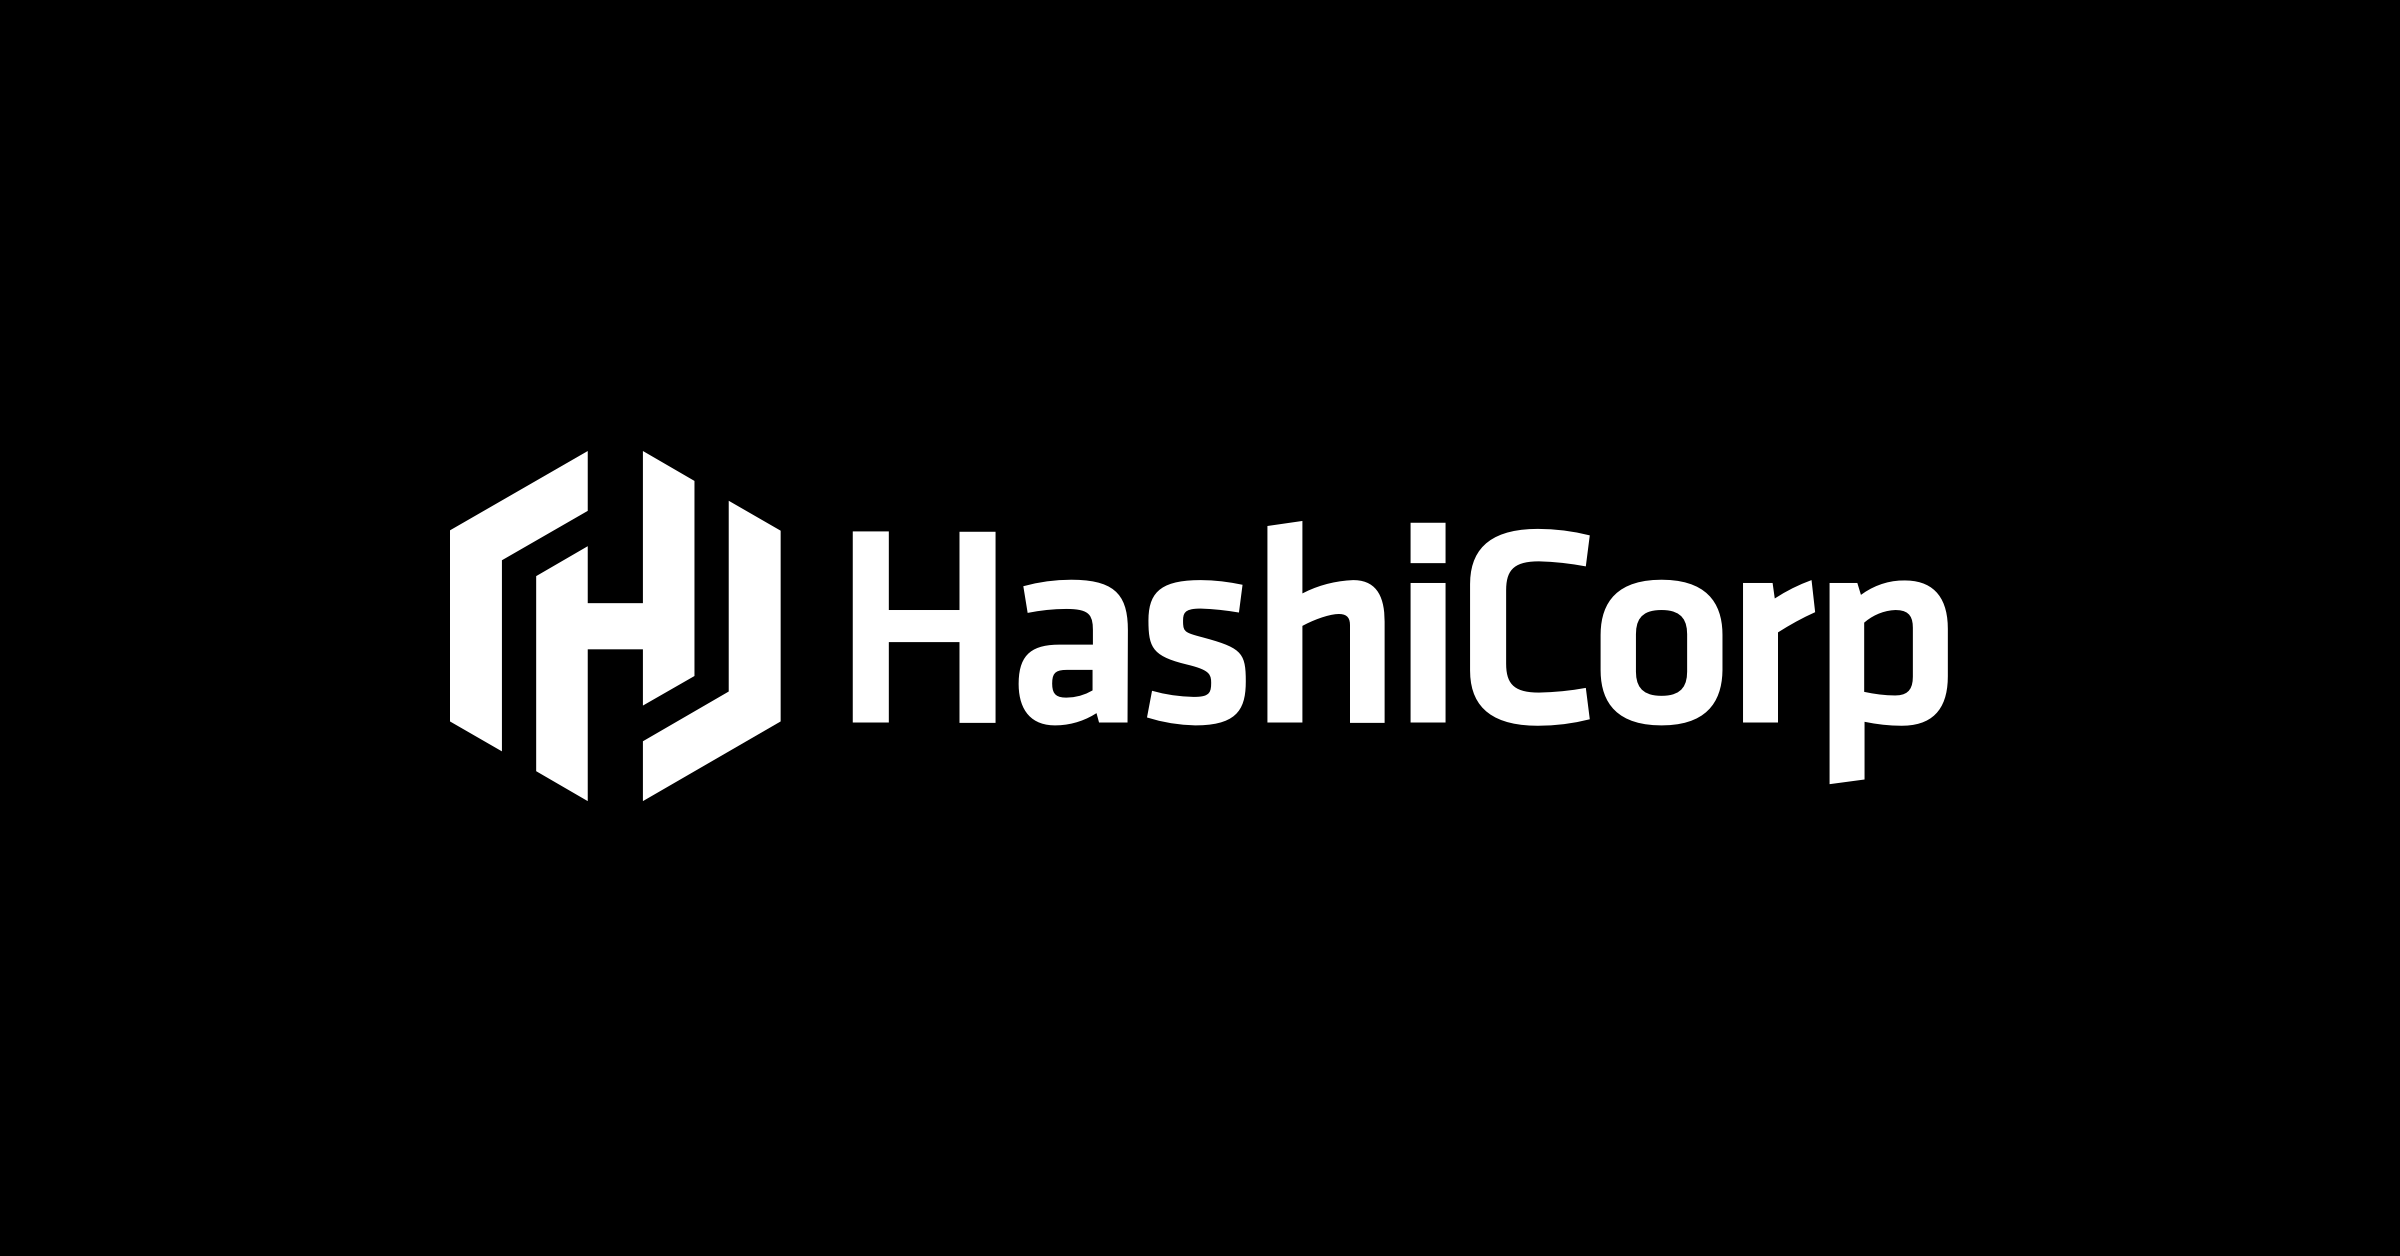 Mitchell Hashimoto's Introduction to HashiCorp Consul Service Networking Image